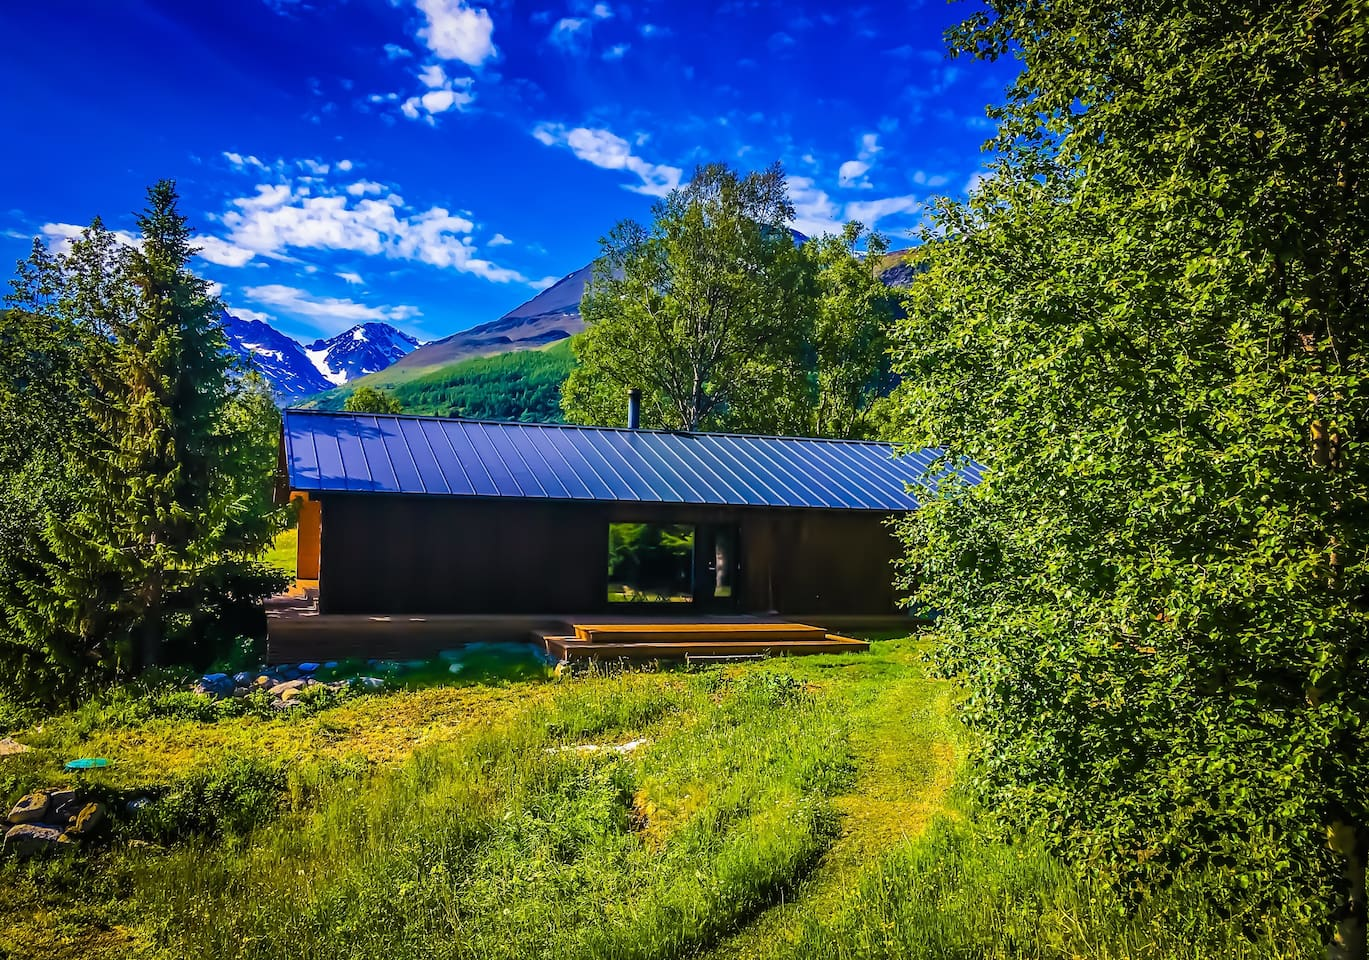 Bergly Lodge is located at the foot of the Lyngen Alps